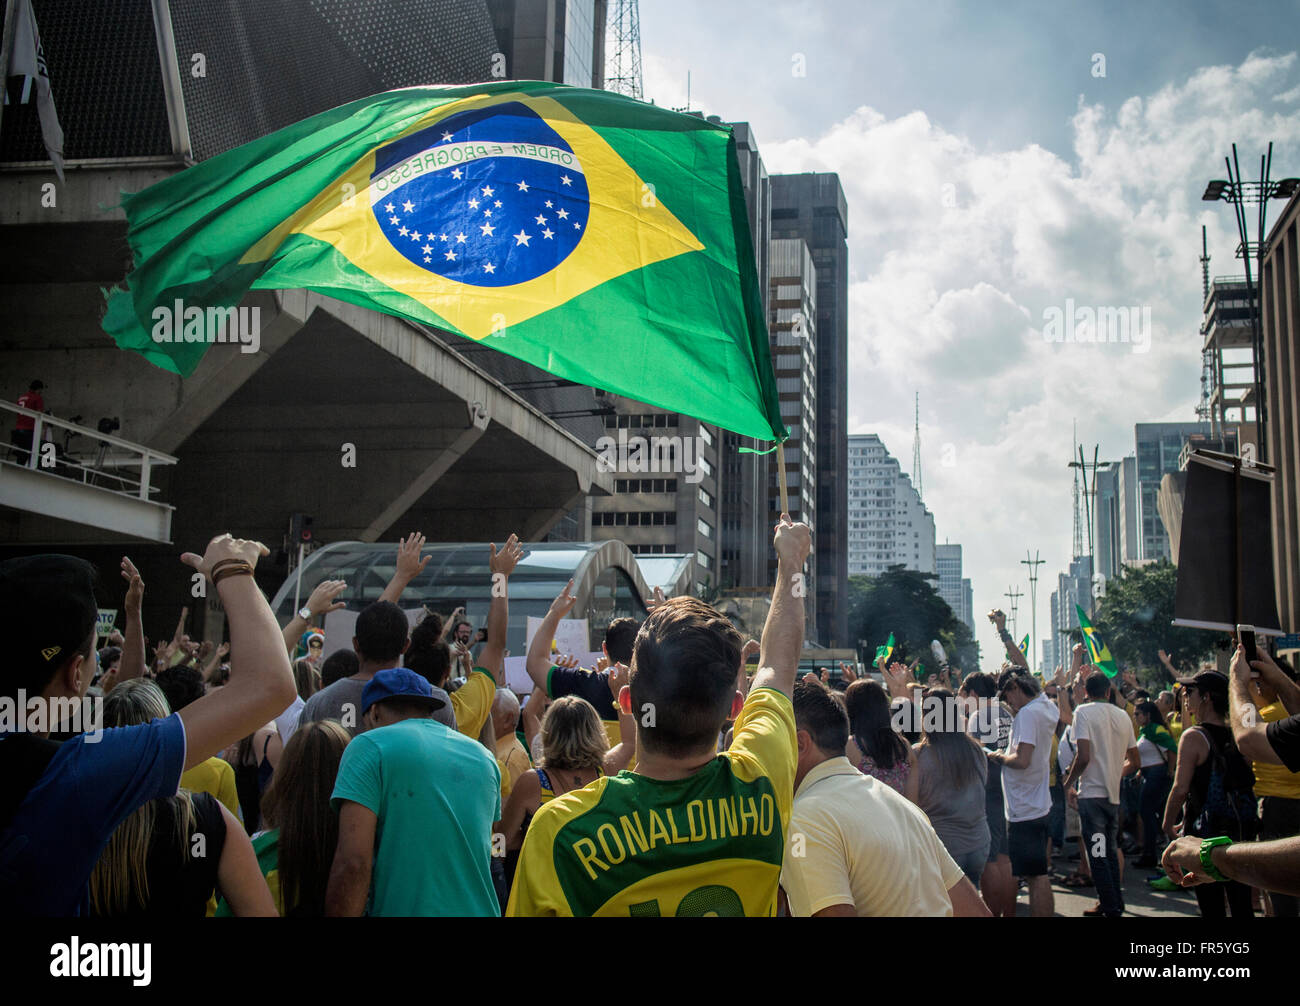 Sao Paulo, Brazil. 20 March 2016. All over Brazil, people have been taking to the streets to protest the growing - Stock Image